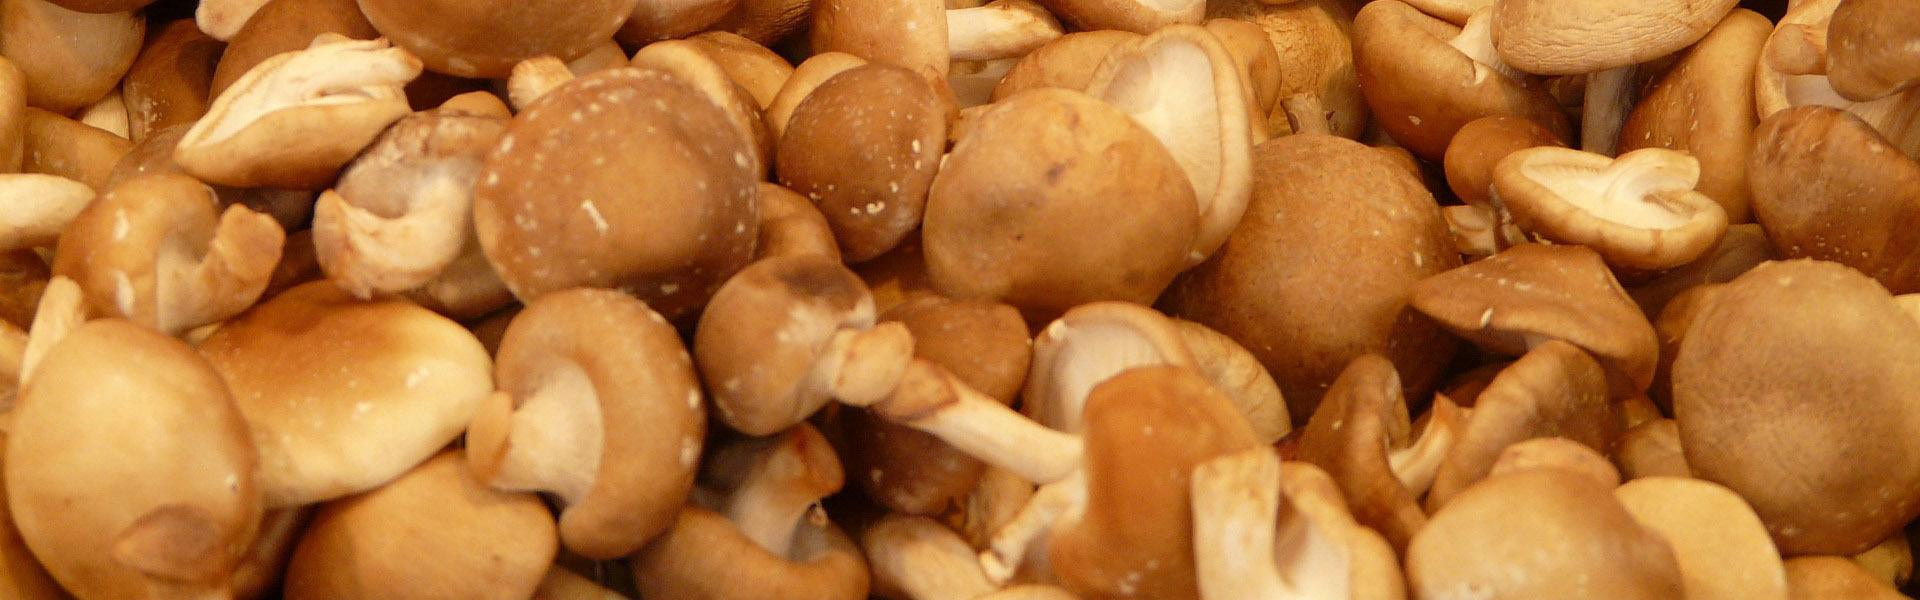 How To Grow Shiitake Mushrooms: The Ultimate Guide - GroCycle